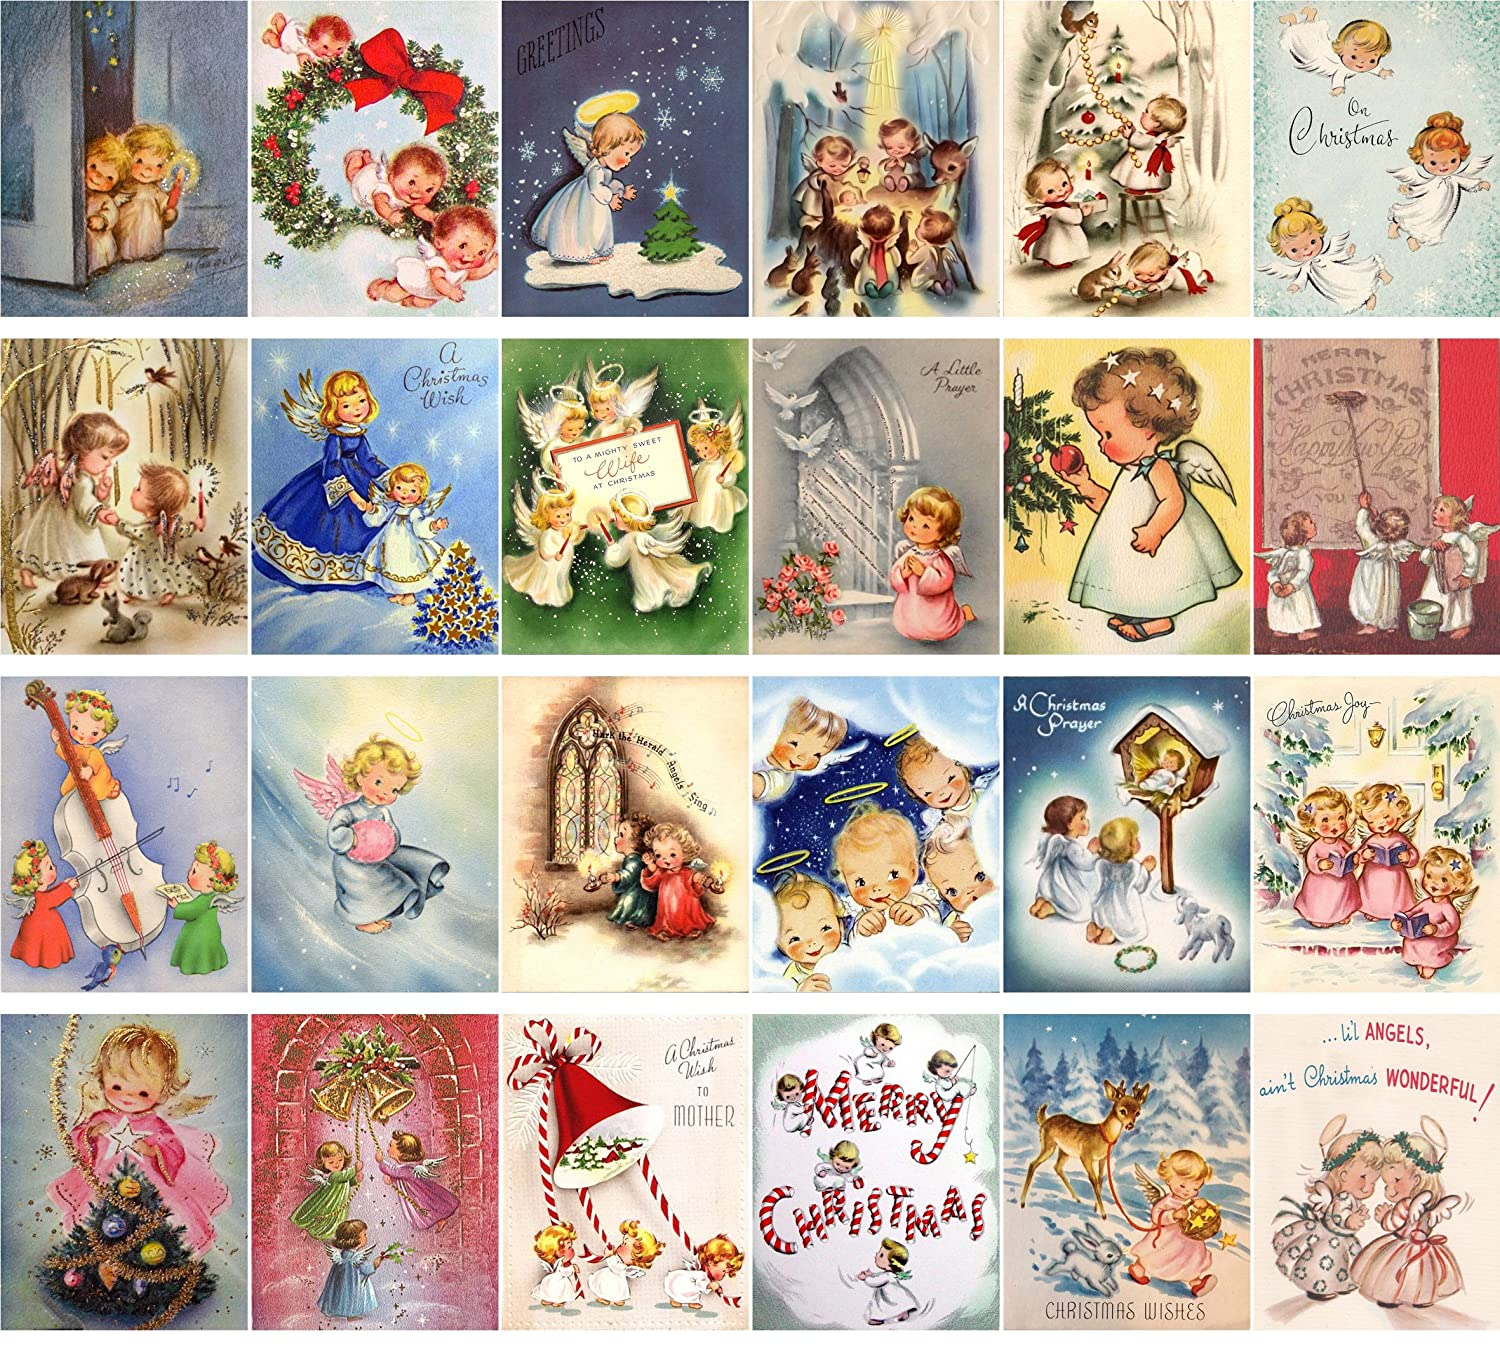 Amazon vintage christmas greeting cards 24pcs little angels amazon vintage christmas greeting cards 24pcs little angels christmas prayer reprint postcard pack office products m4hsunfo